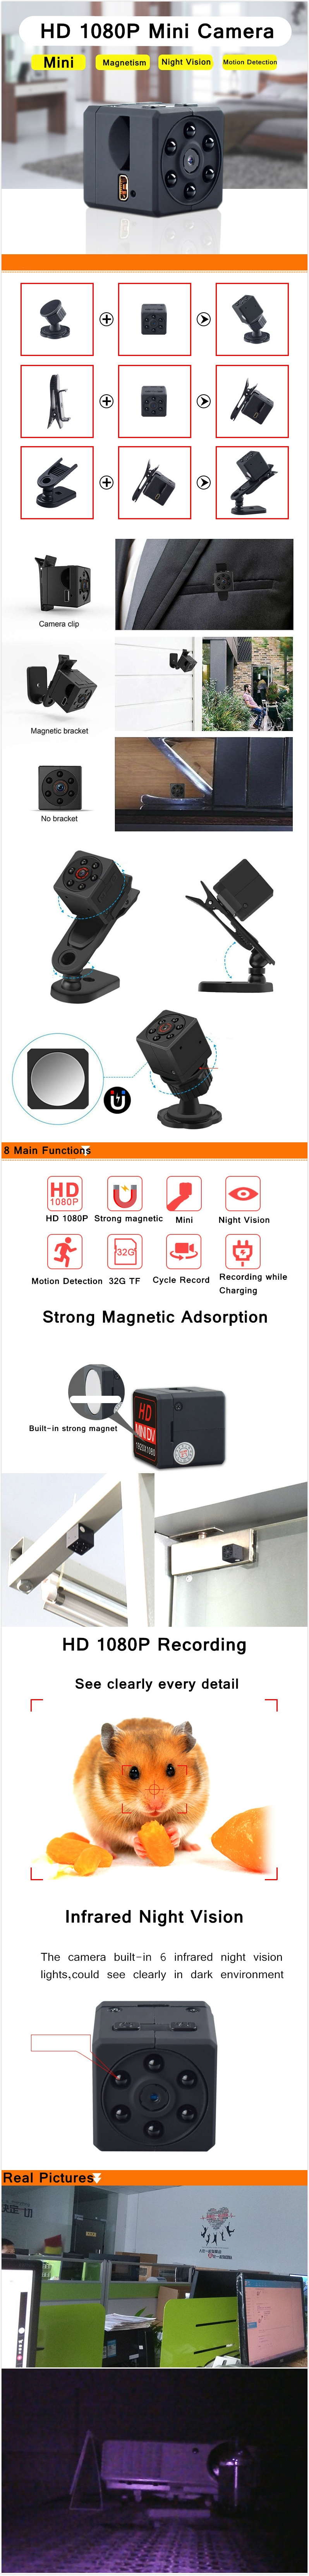 MD18S 1080P HD IR Infrared Night Vision Mini FPV Camera Camcorder M.otion Detection Mini D.V Video Recorder